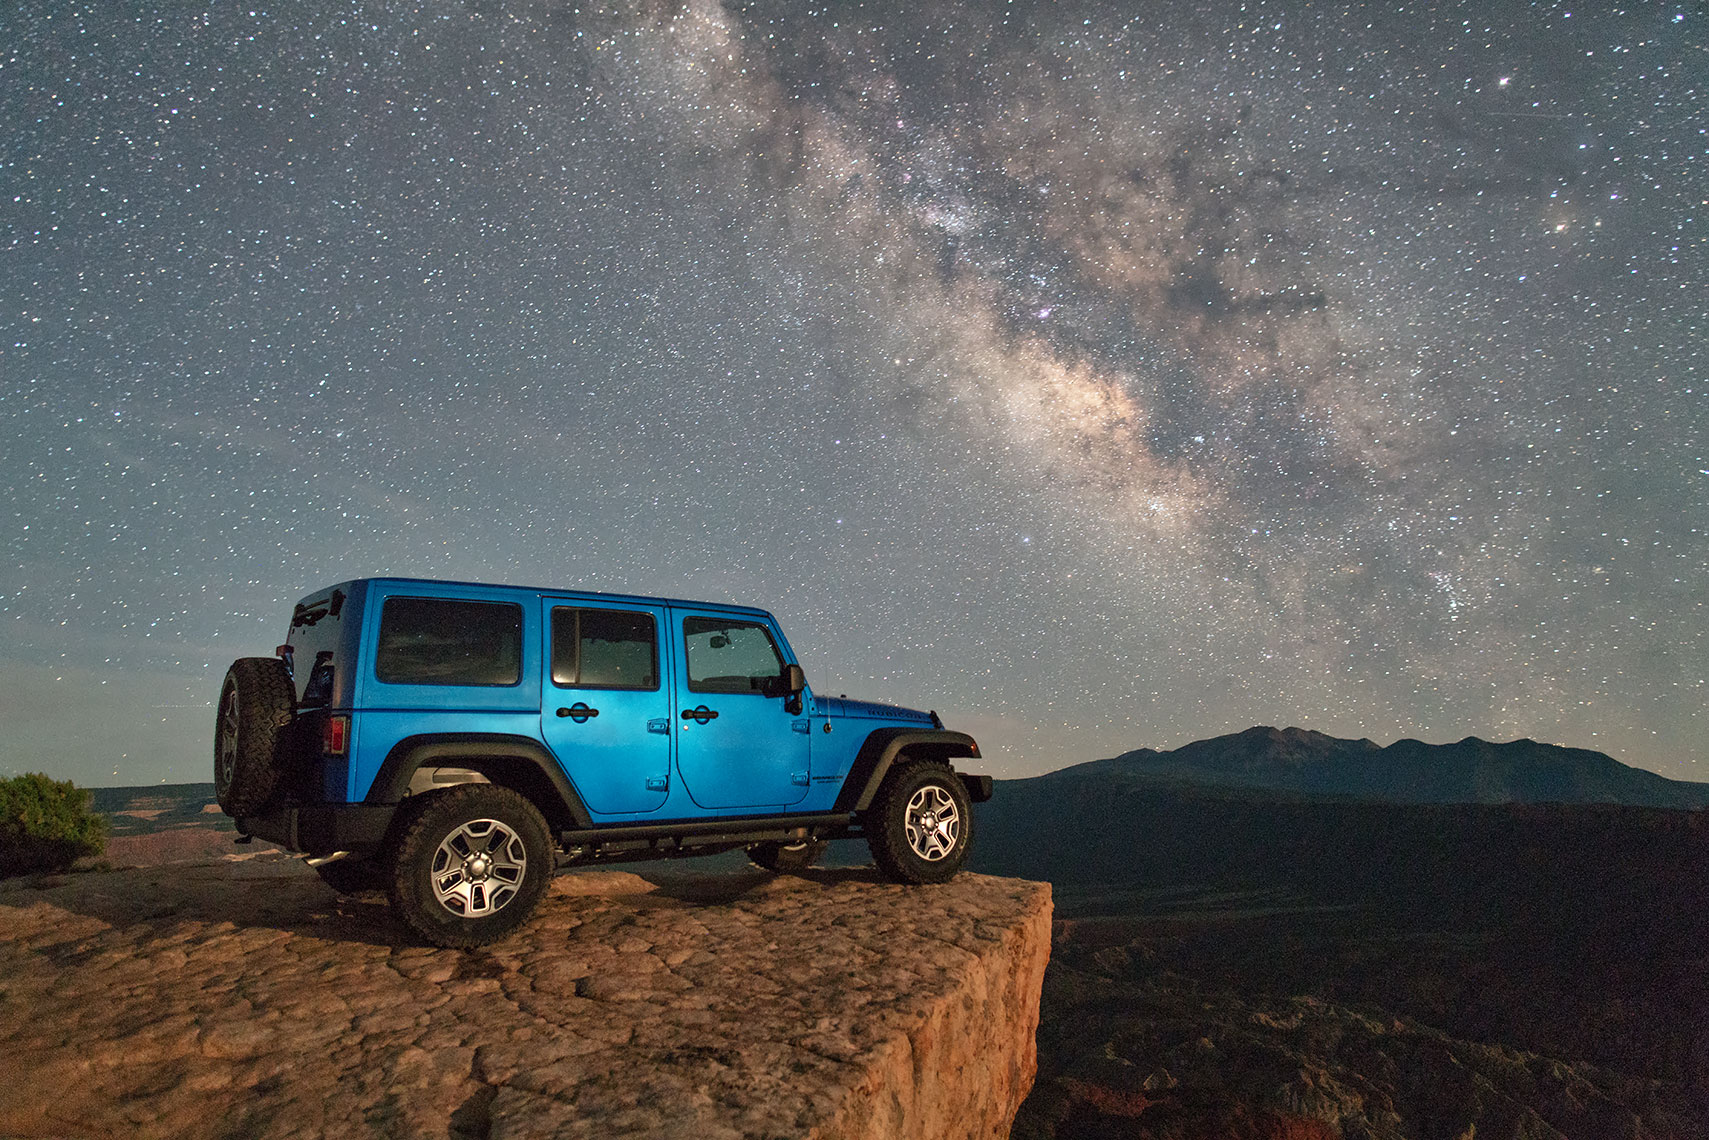 jeep_wrangler_utah_milky_way